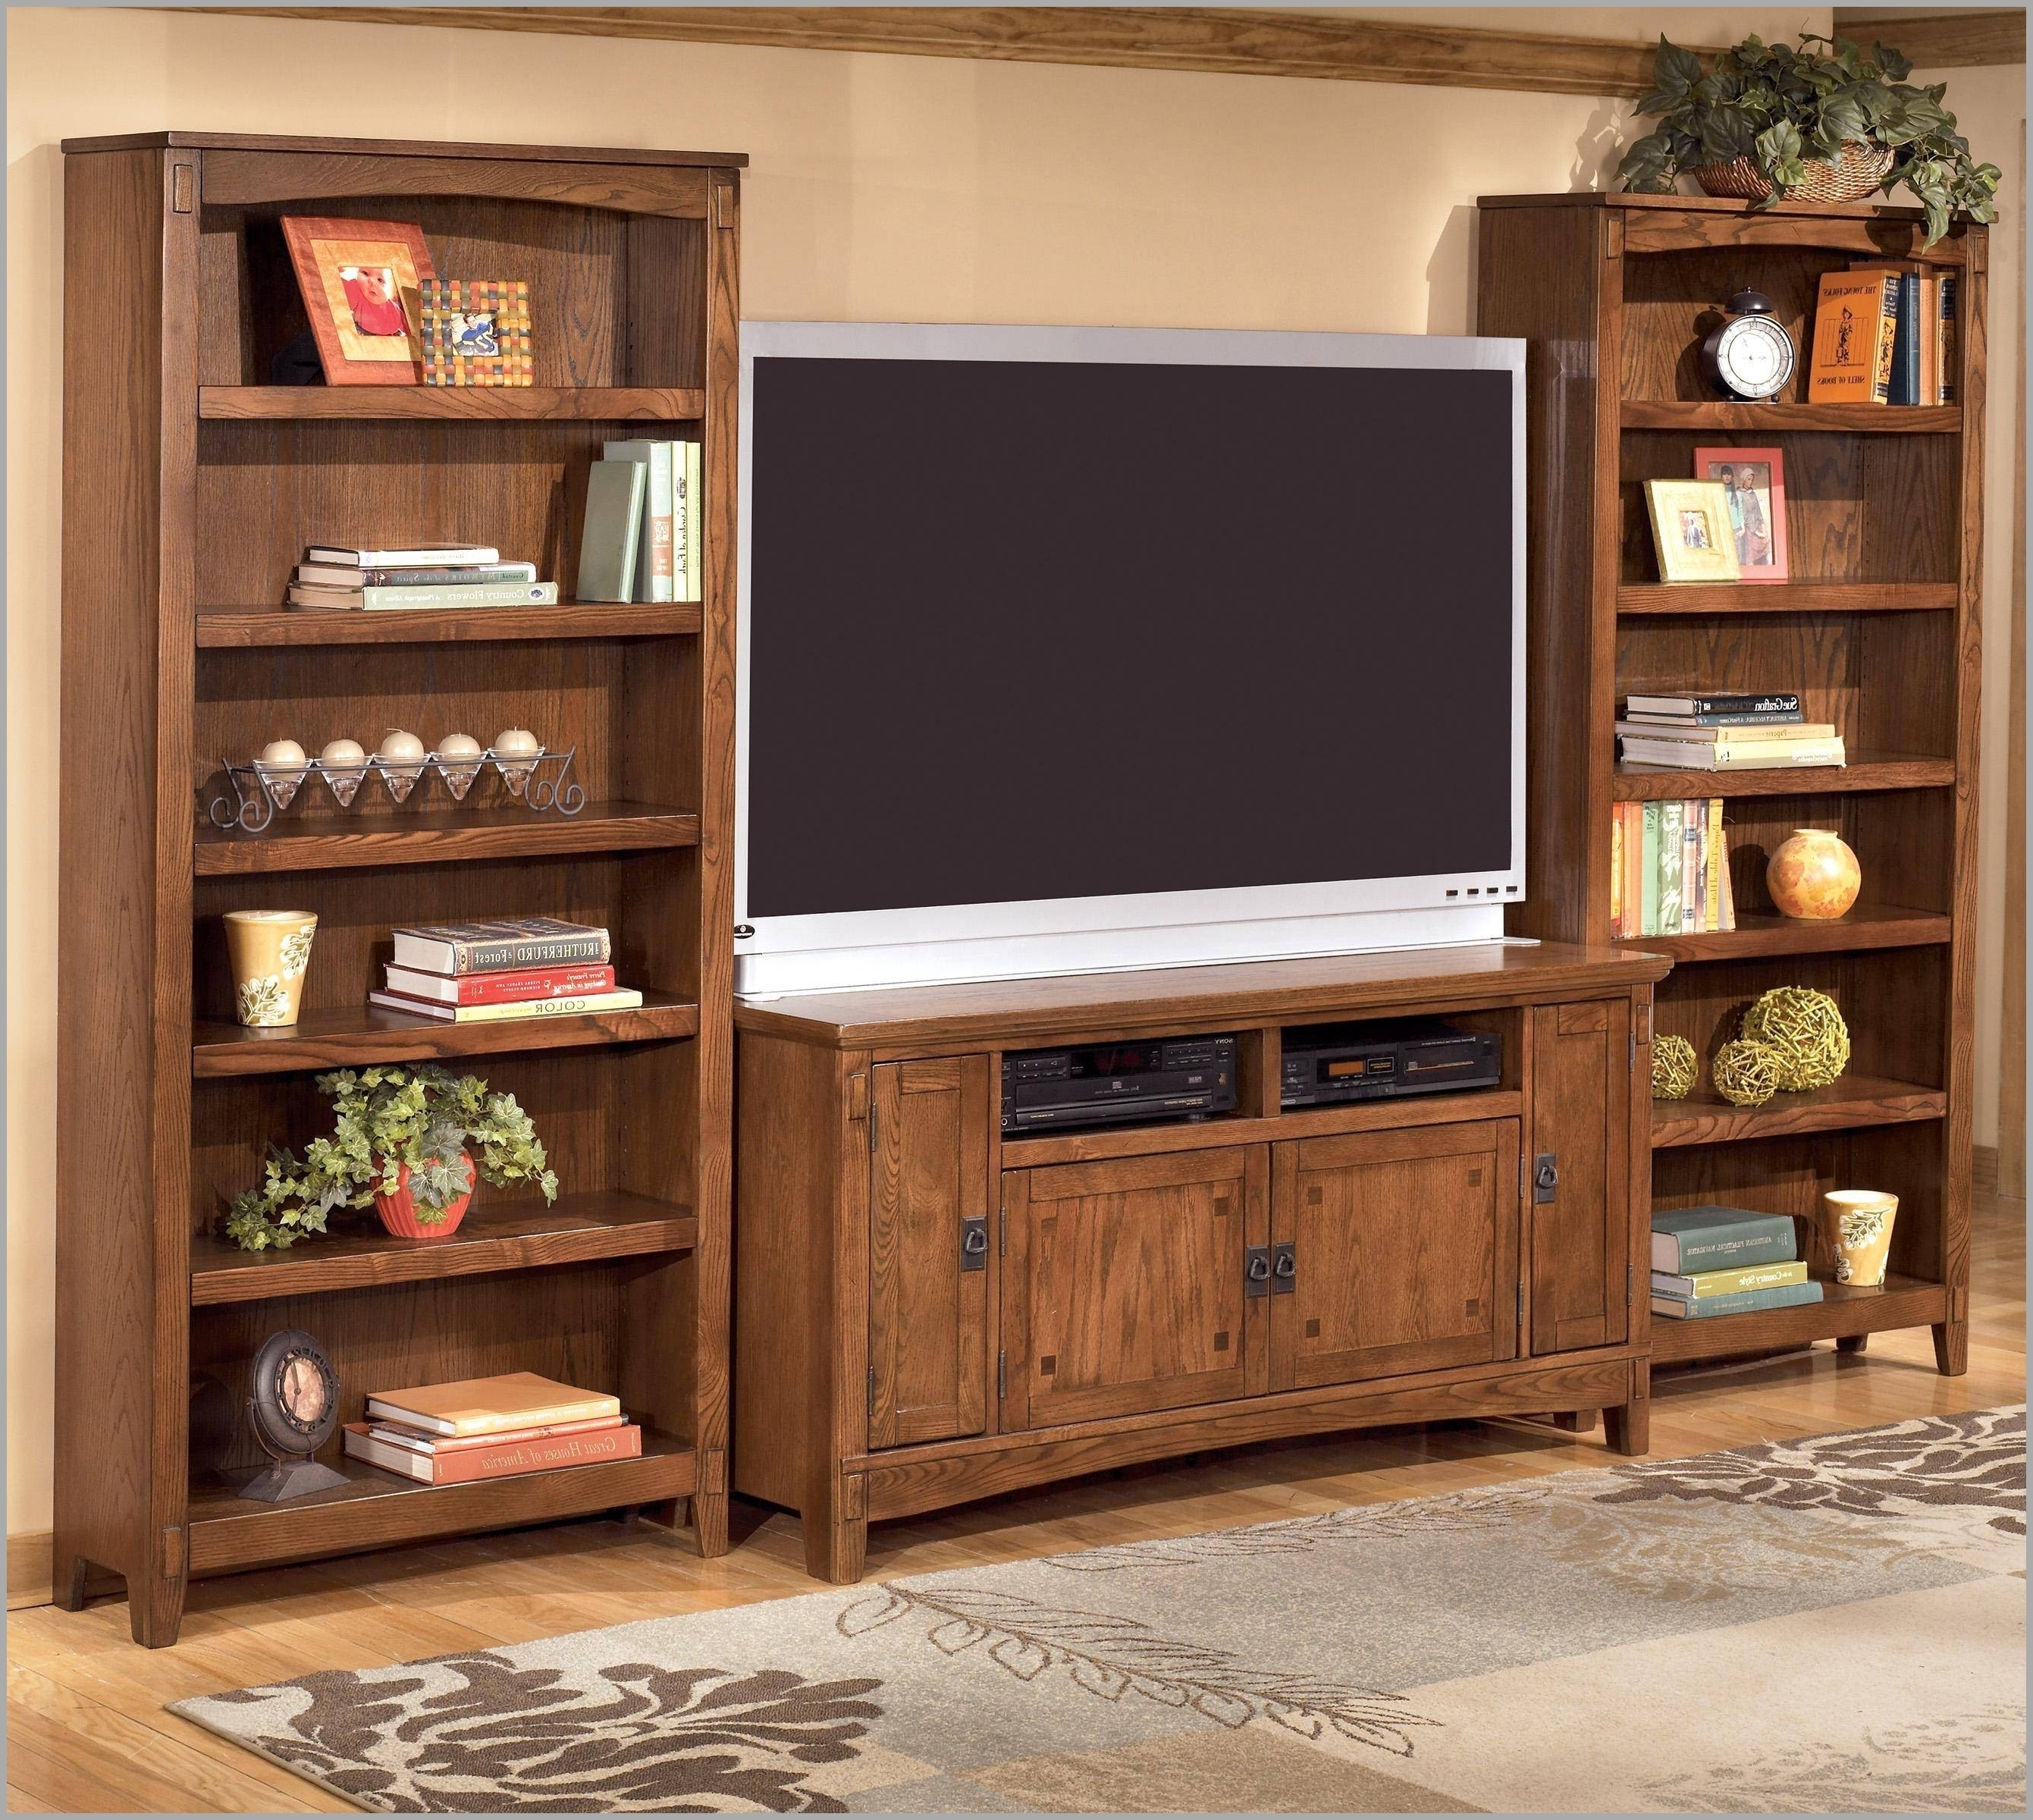 Tv Stand Bookcase Combo 305633 15 Best Ideas Of Tv Stands With In Current Book Case Tv (View 13 of 15)